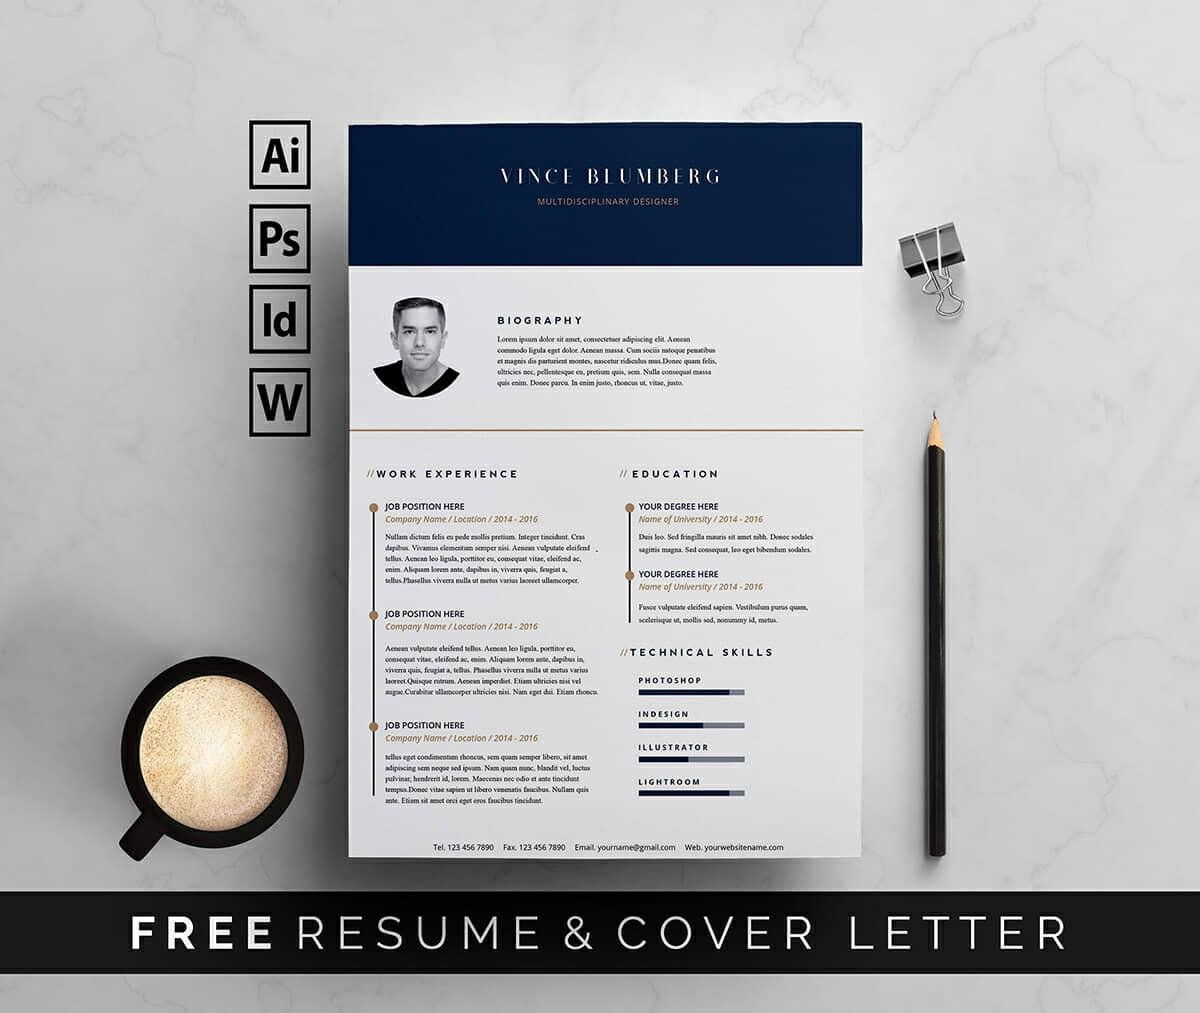 resume templates for microsoft word free awesome sap pi samples areas of expertise tally Resume Free Awesome Resume Templates Microsoft Word